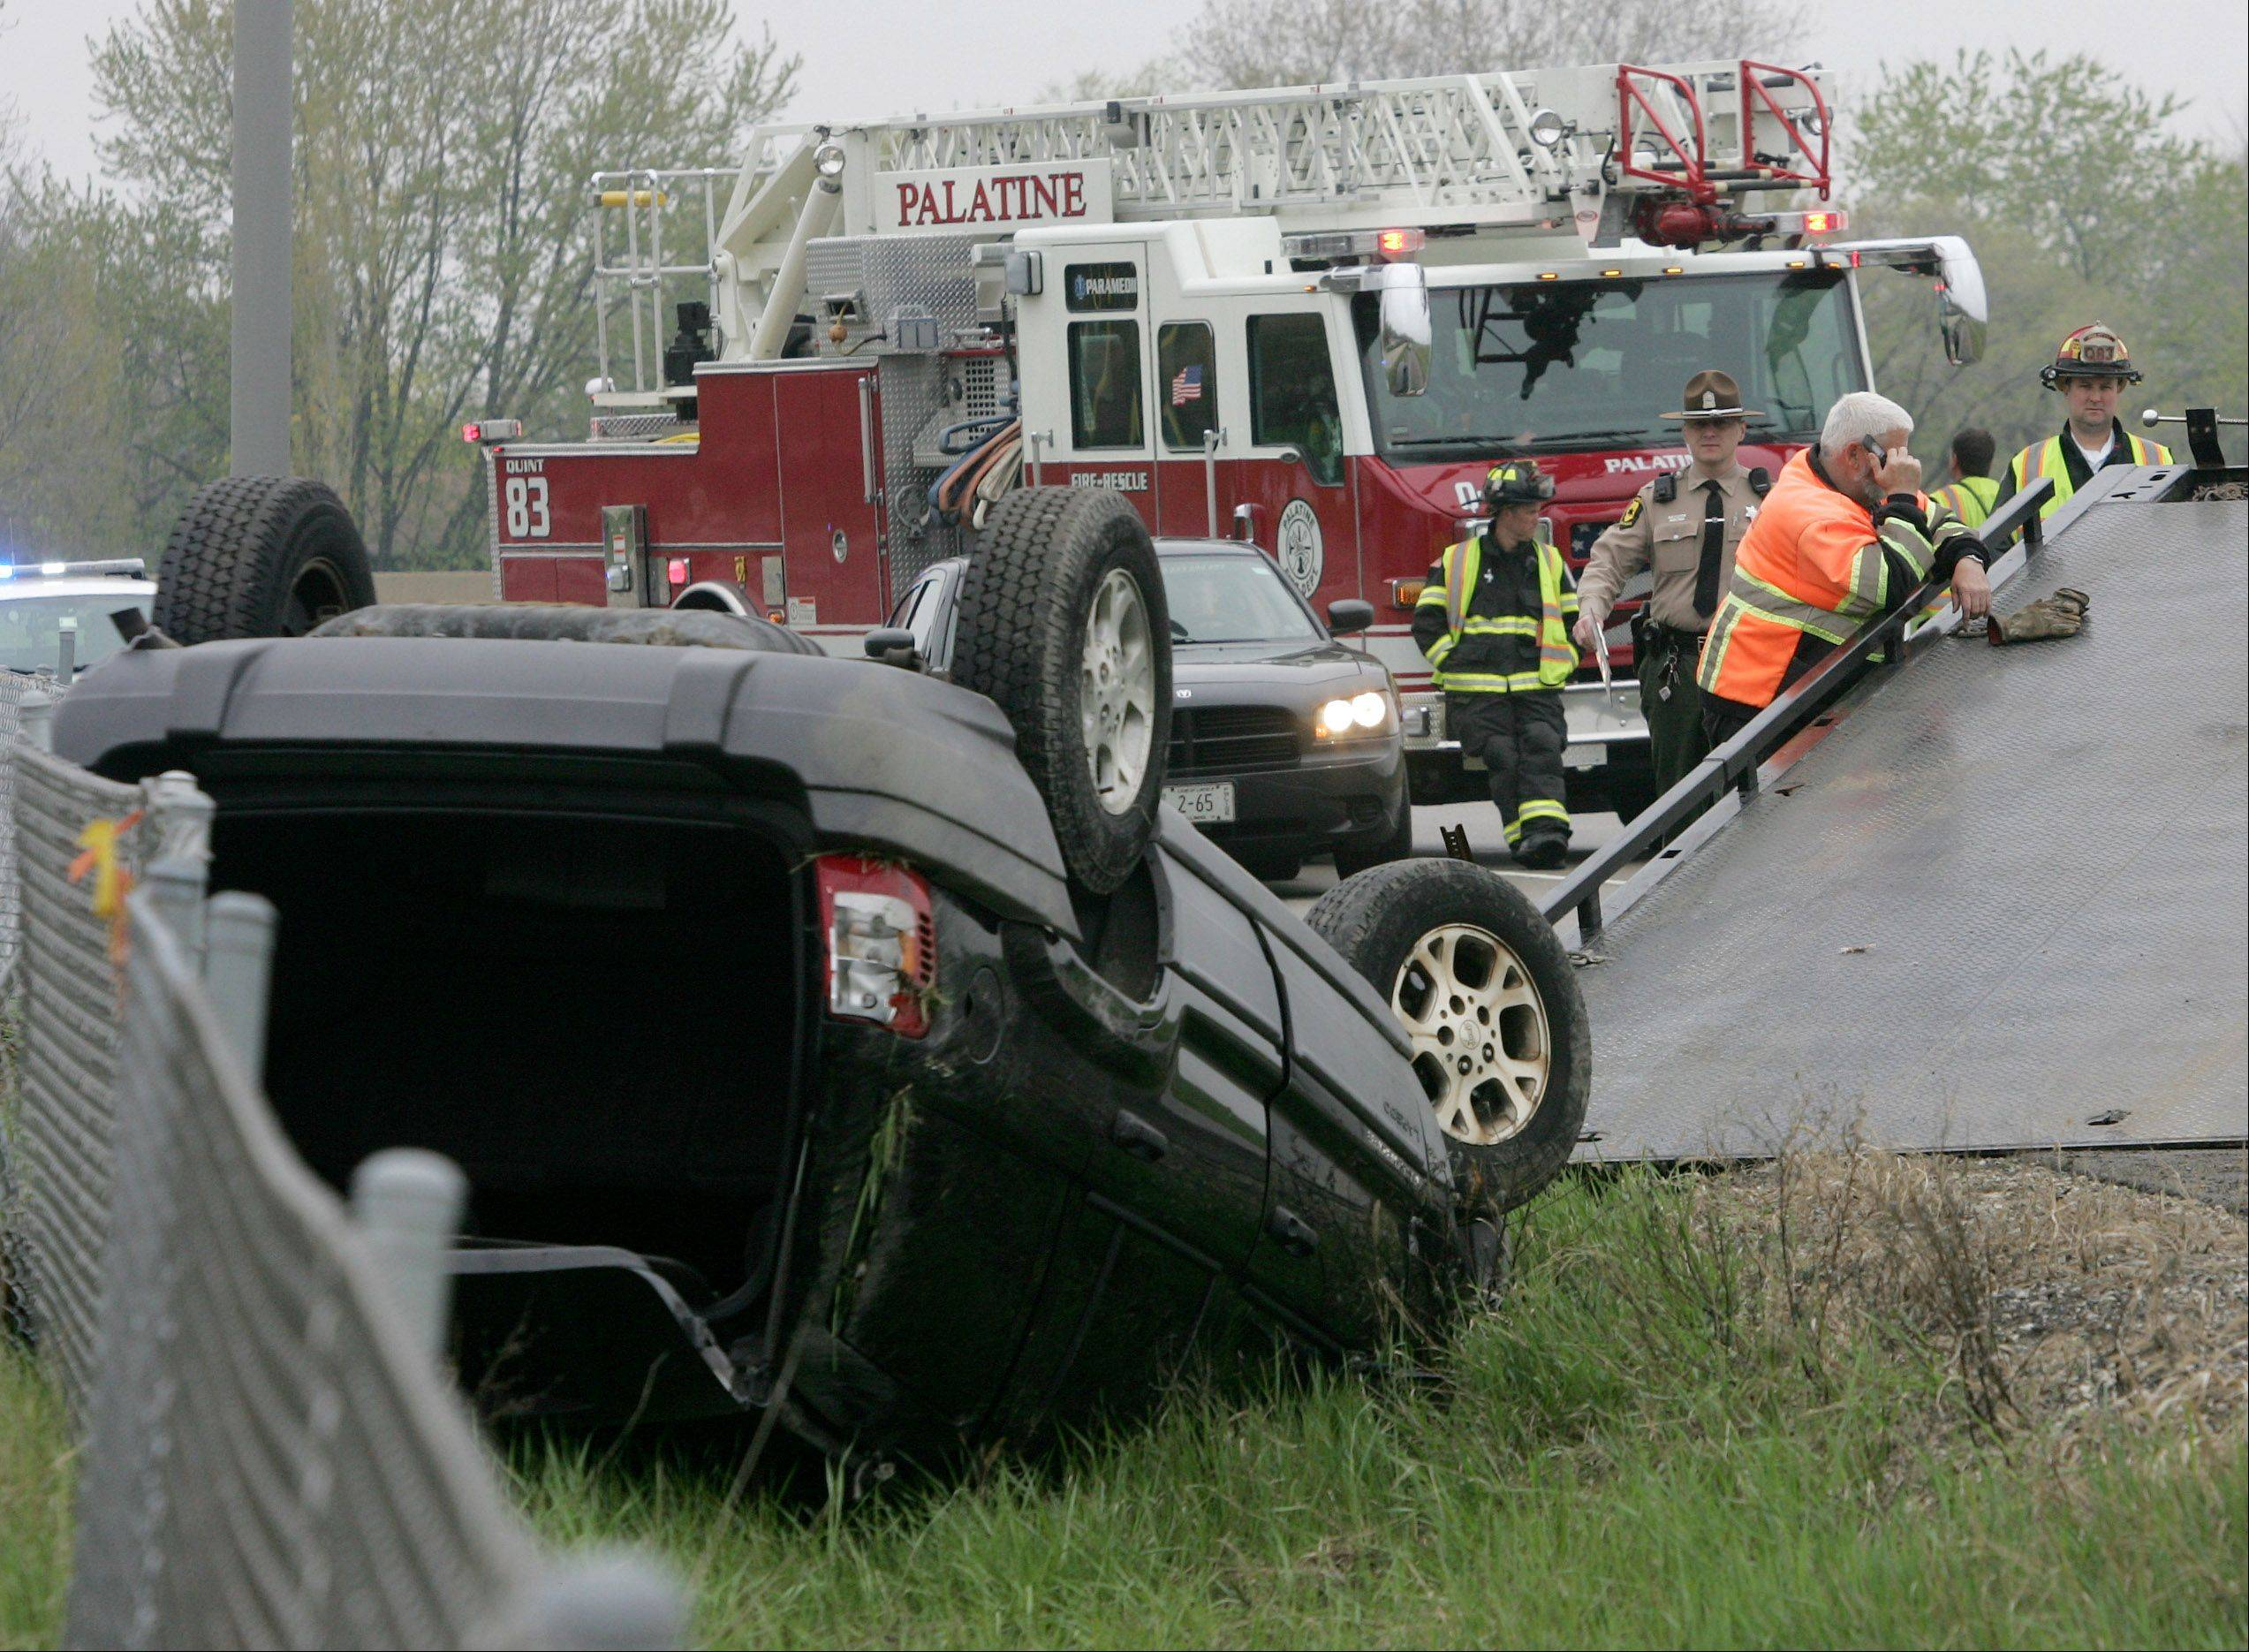 The Palatine Fire Department and Illinois State Police responded to a rollover accident Sunday involving a Jeep Grand Cherokee as it exited onto the eastbound ramp to Palatine Road from northbound Route 53 in Palatine. Bob Caputo of A-Express Towing in Kildeer tries to flip the vehicle as it is removed from the scene.